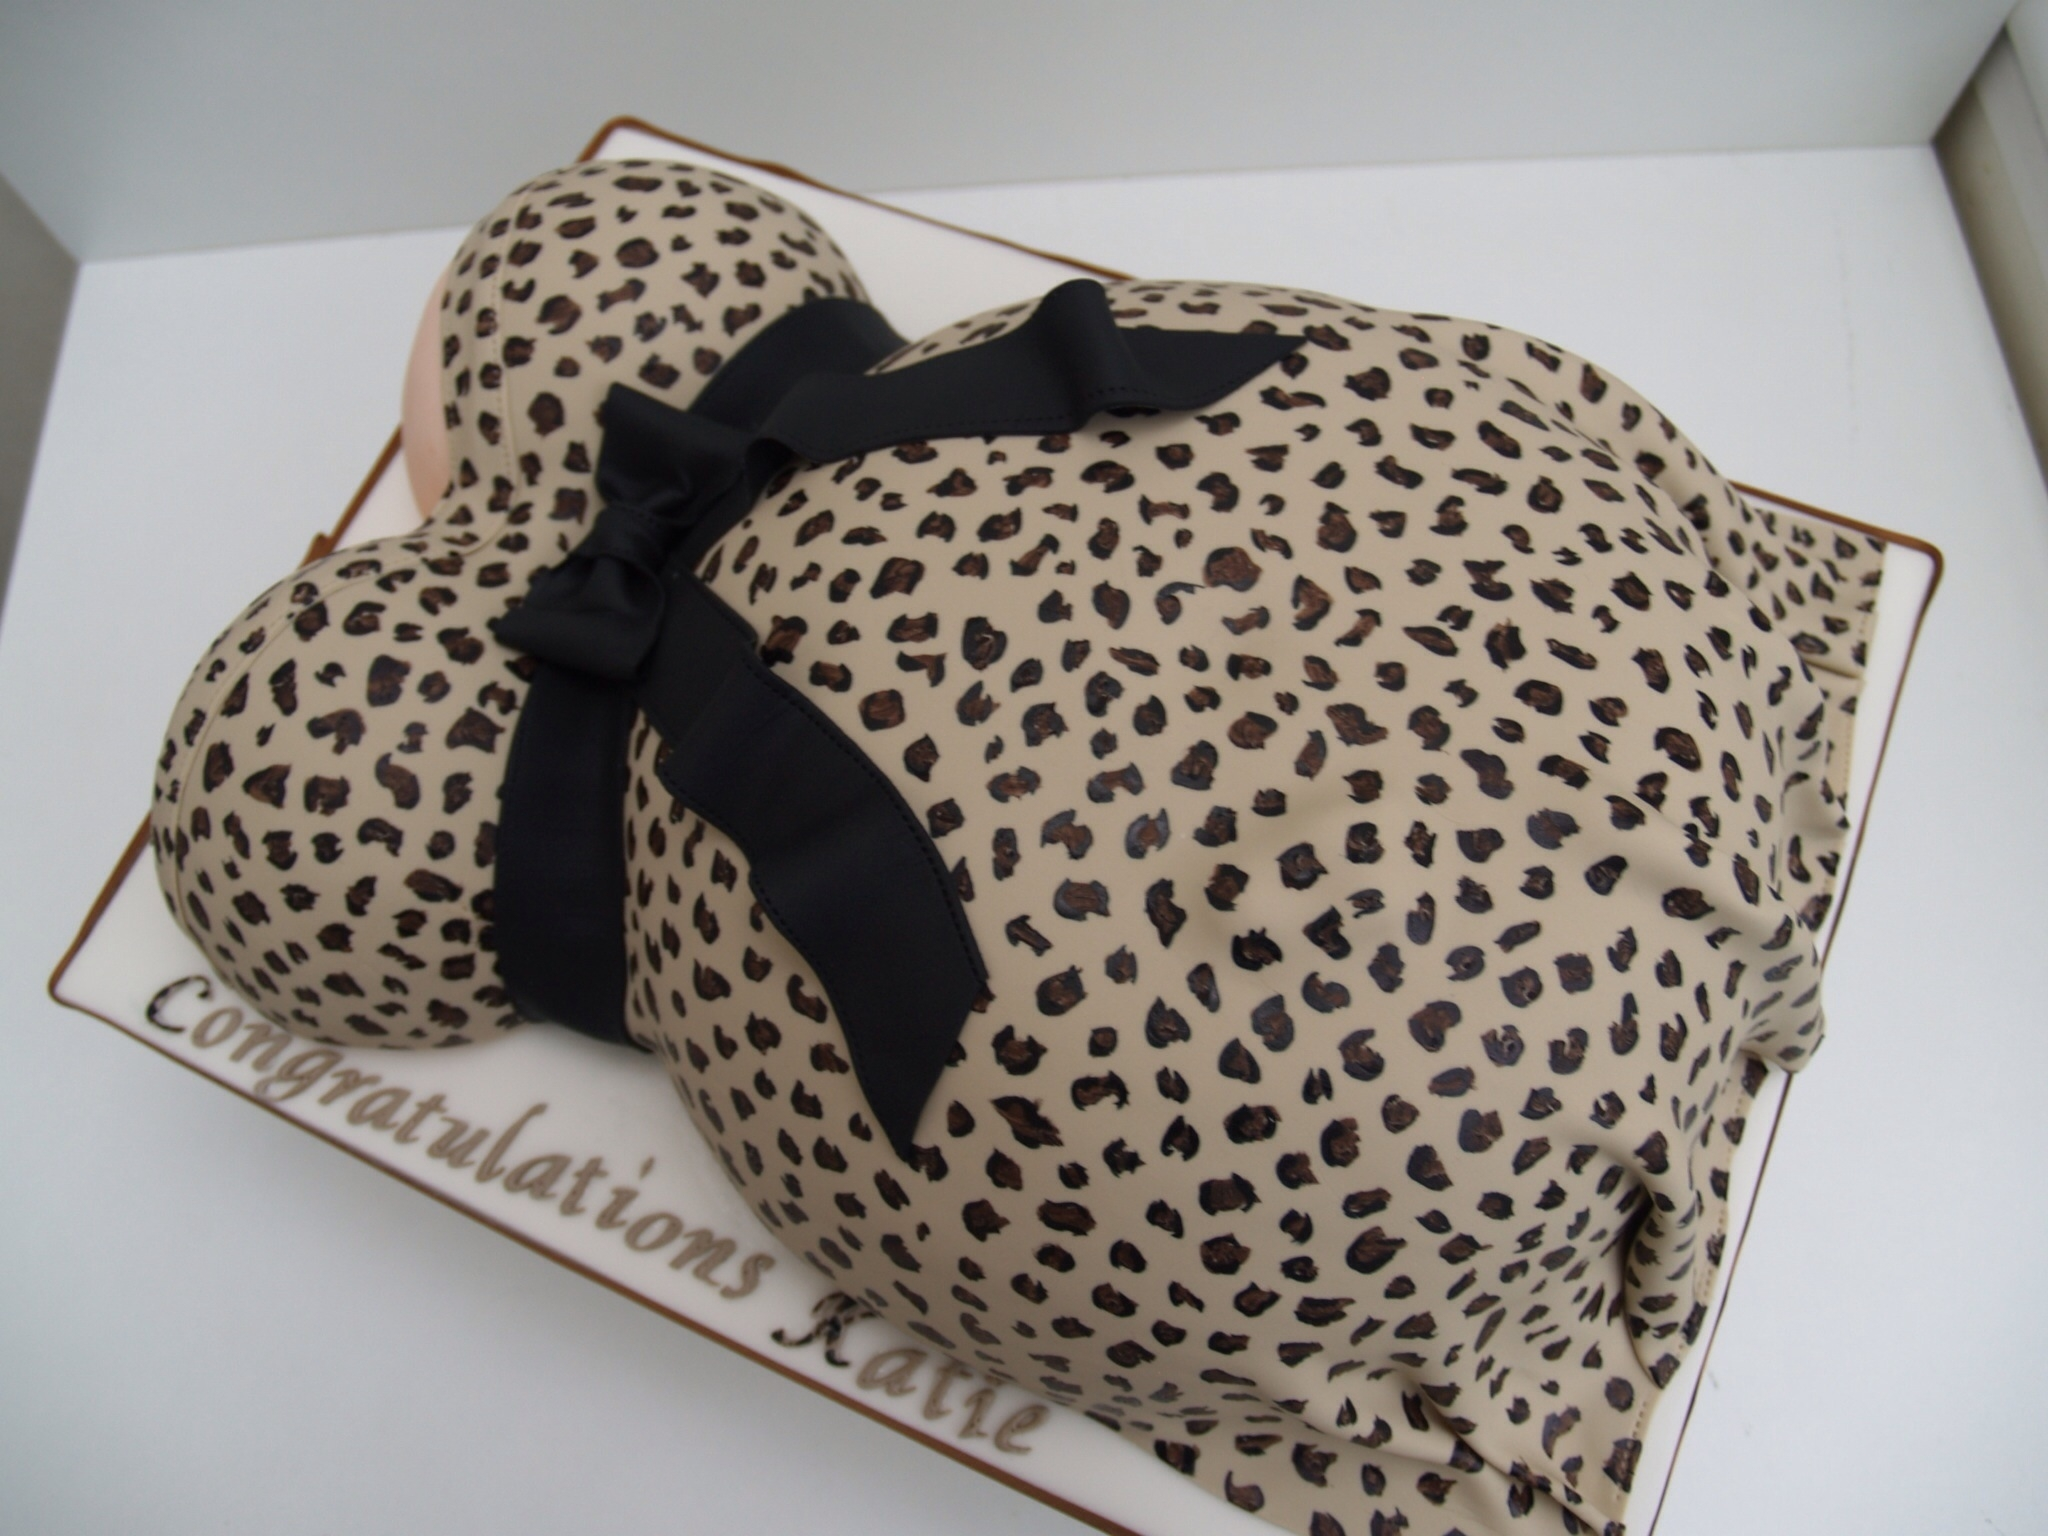 Wrap your little one in custom Leopard Print baby clothes. Cozy comfort at Zazzle! Personalized baby clothes for your bundle of joy. Choose from huge ranges of designs today!